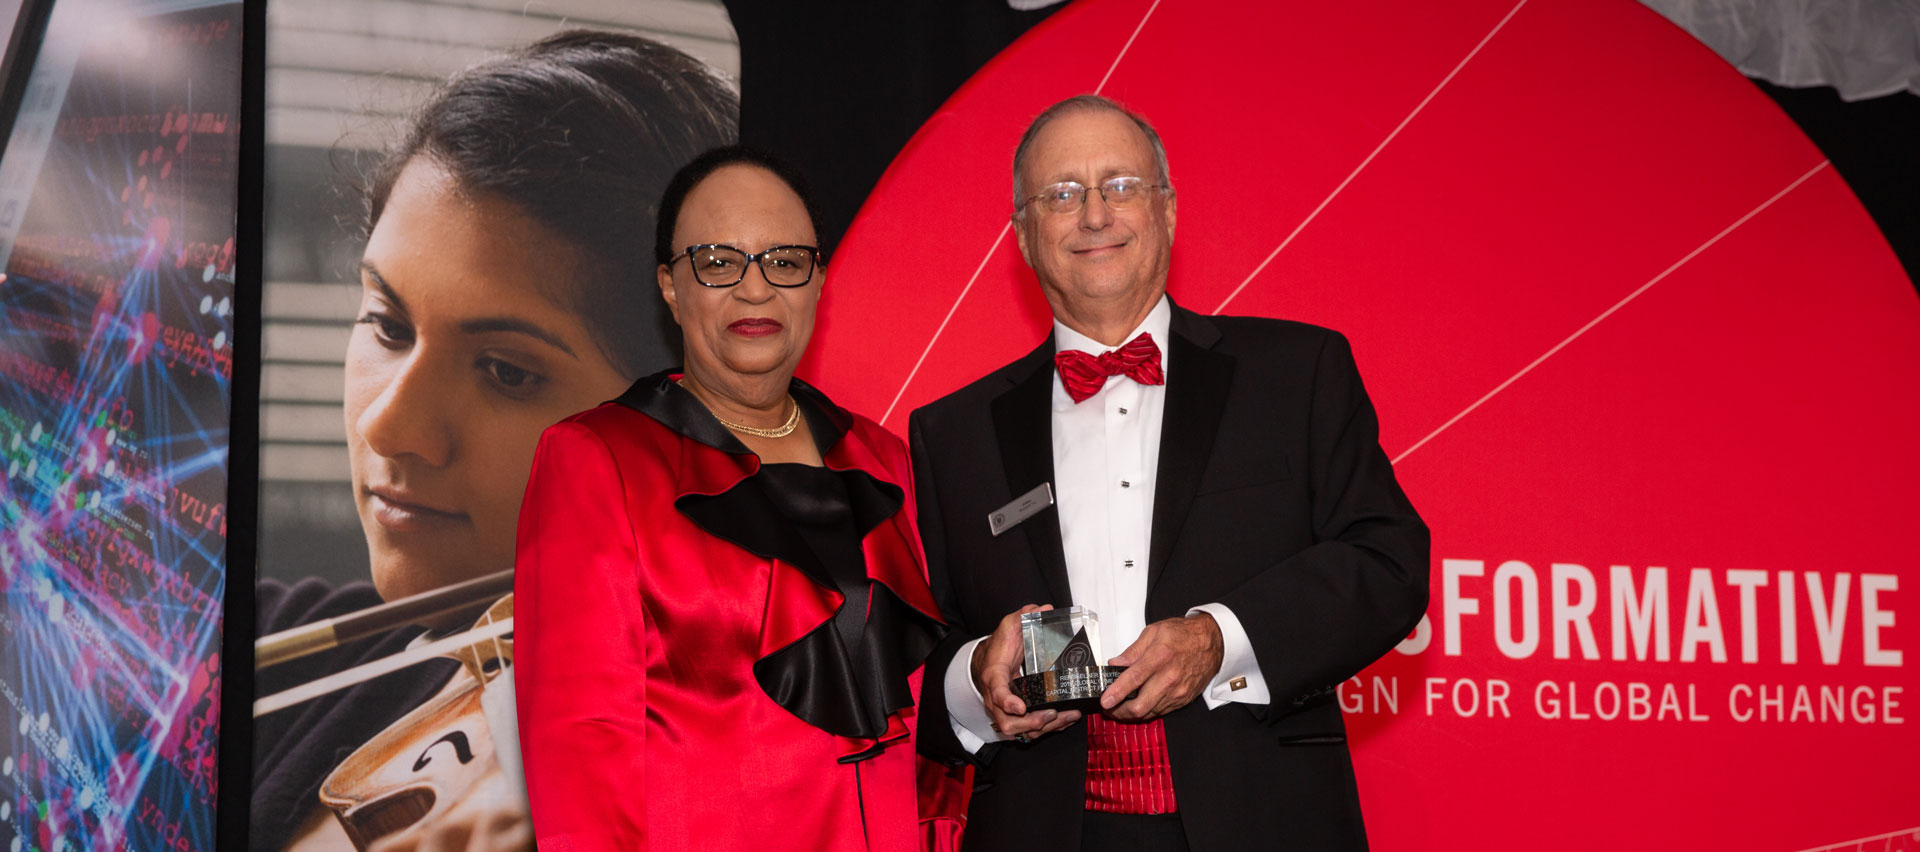 Dr. John D. Bennett '74, CDPHP president, and CEO, receives the Global Game Changers award from Dr. Shirley Ann Jackson at 2019 Scholarship Gala.